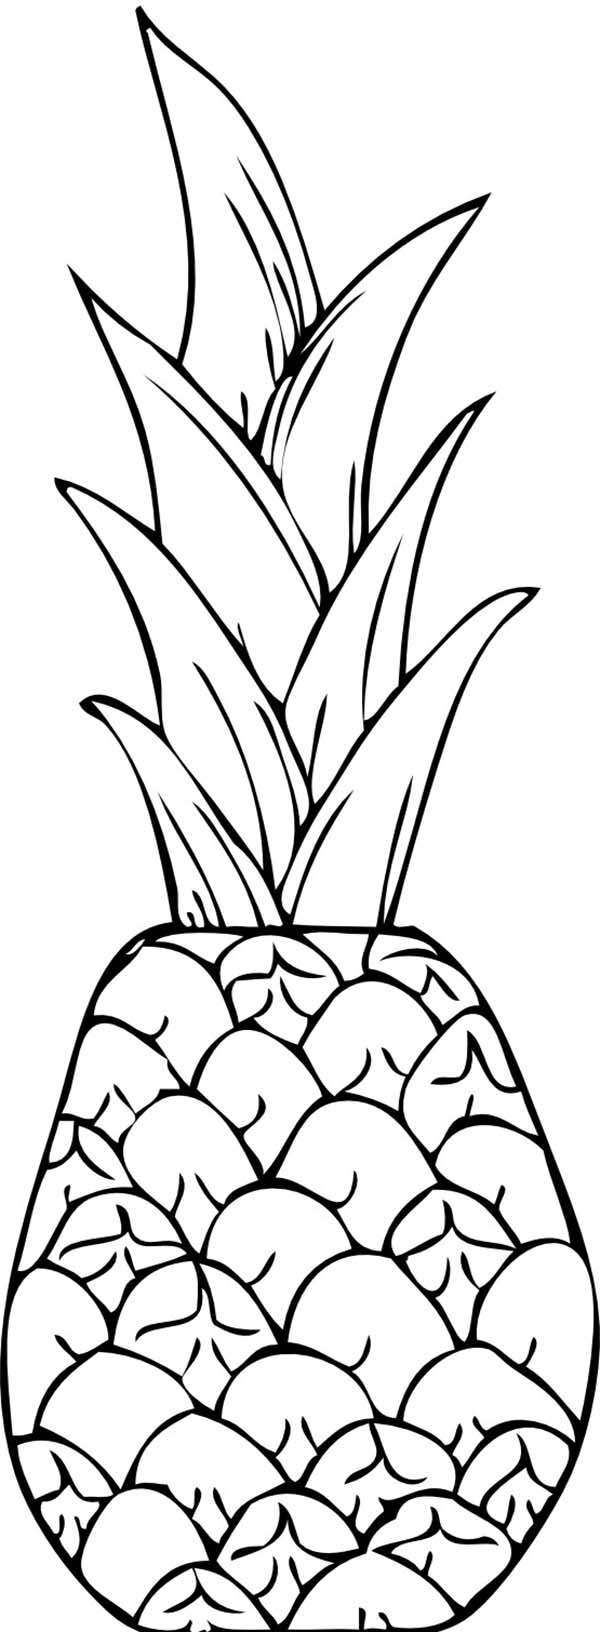 pineapple coloring image pineapple coloring pages to download and print for free pineapple image coloring